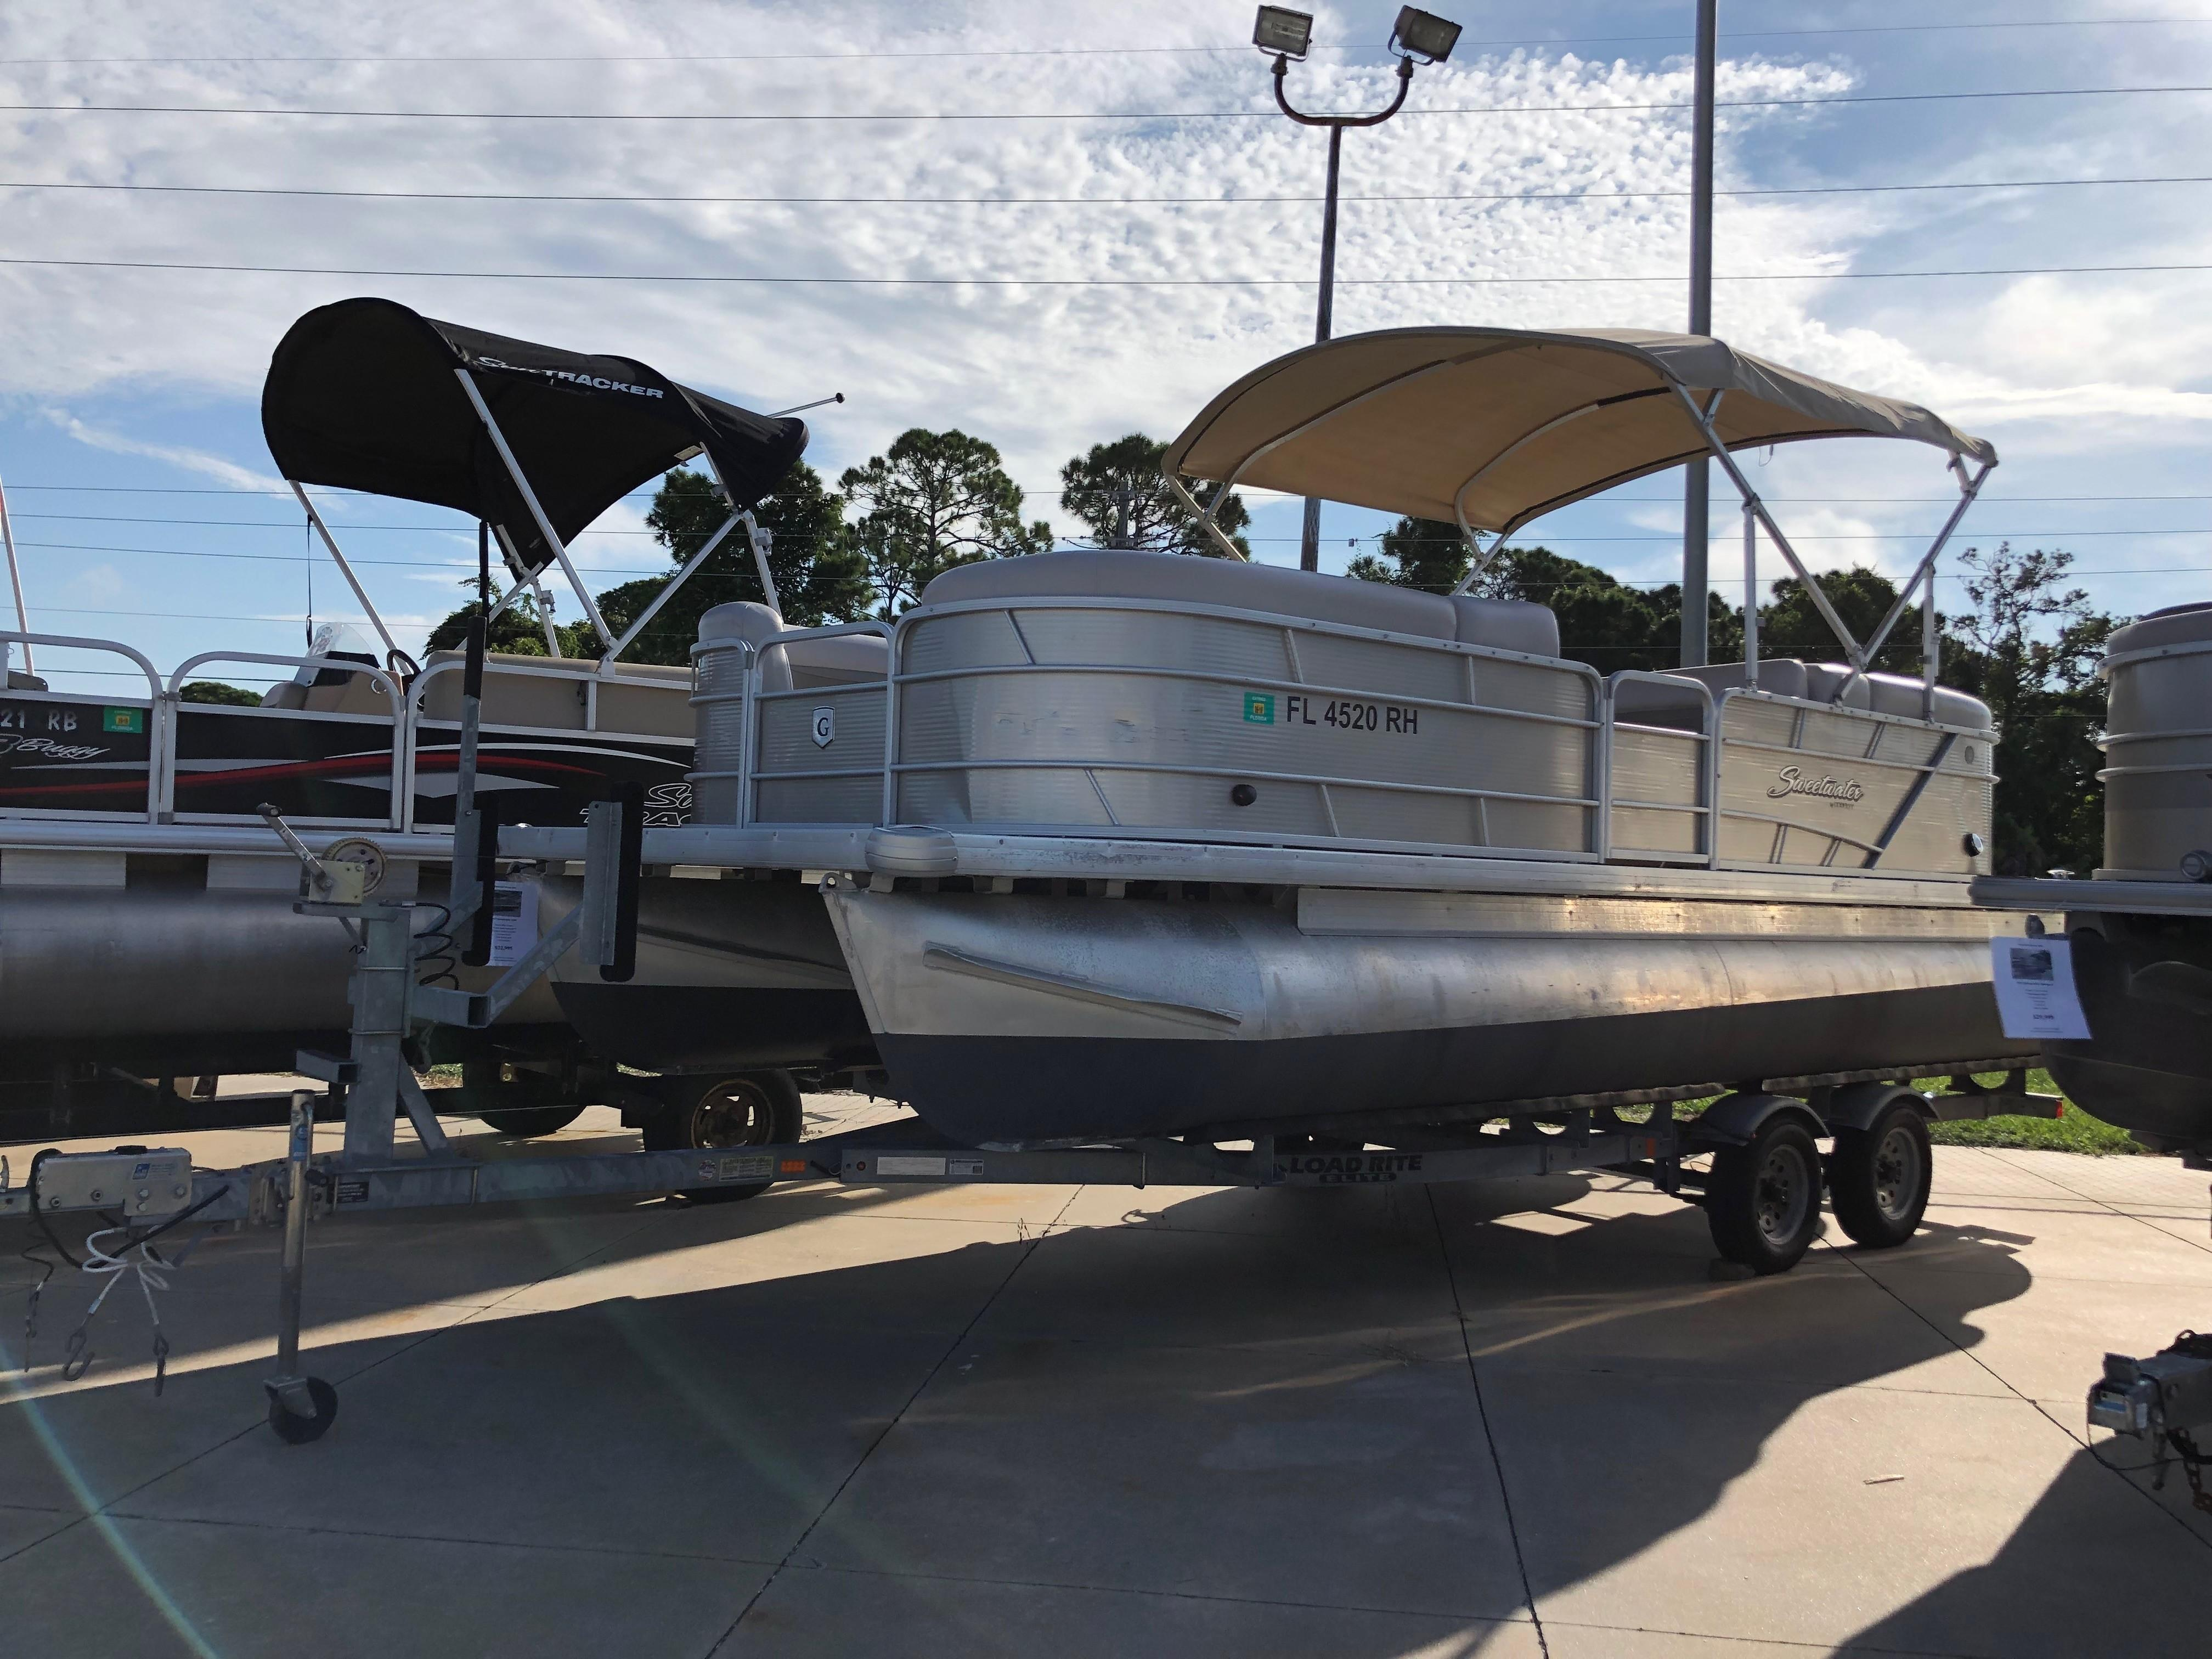 2017 Sweetwater 2286, Englewood Florida - boats.com